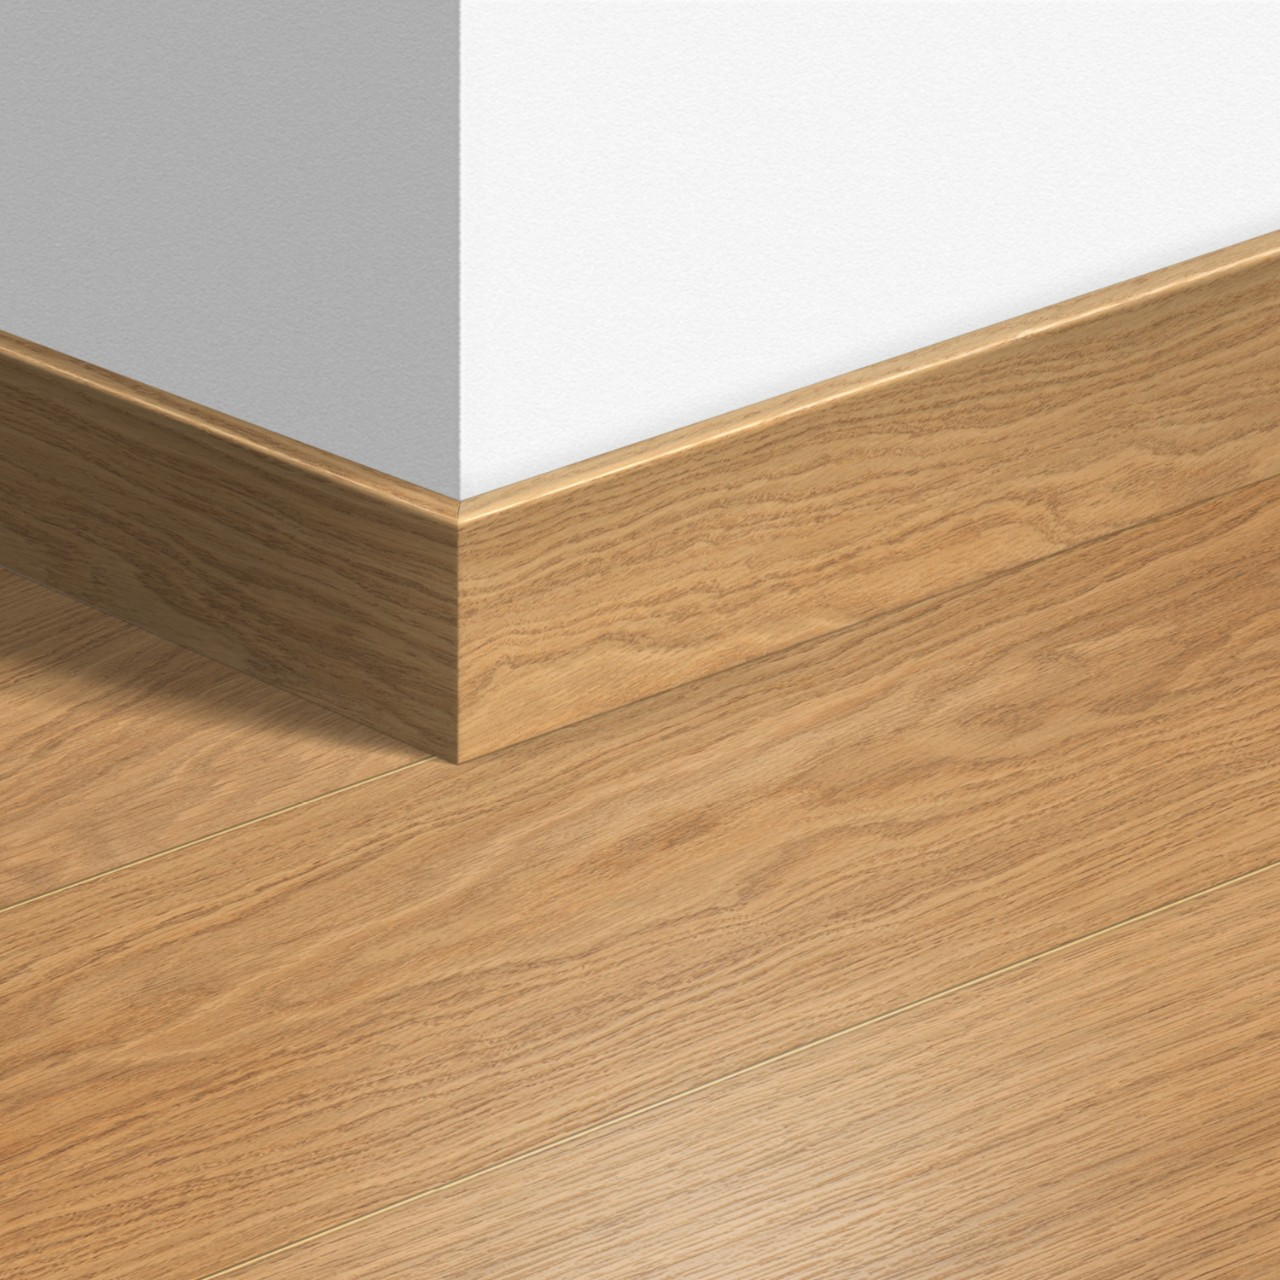 QSPSKR Laminate Accessories Oak natural oiled QSPSKR01539